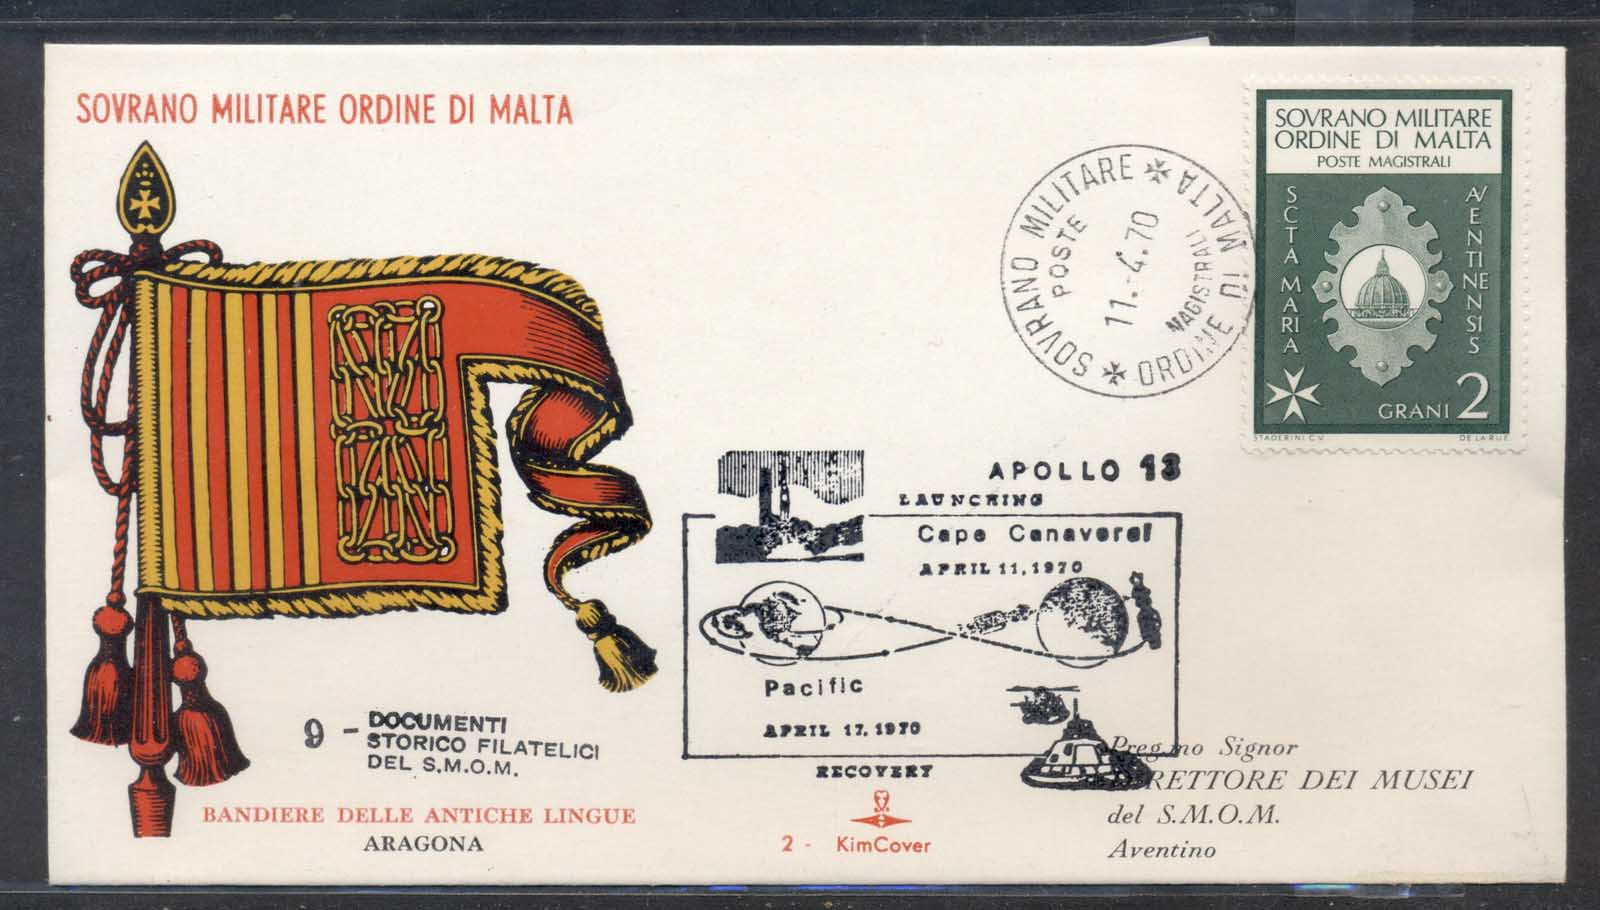 Malta 1970 Sovereign Military Order Apollo 13 Launching FDC